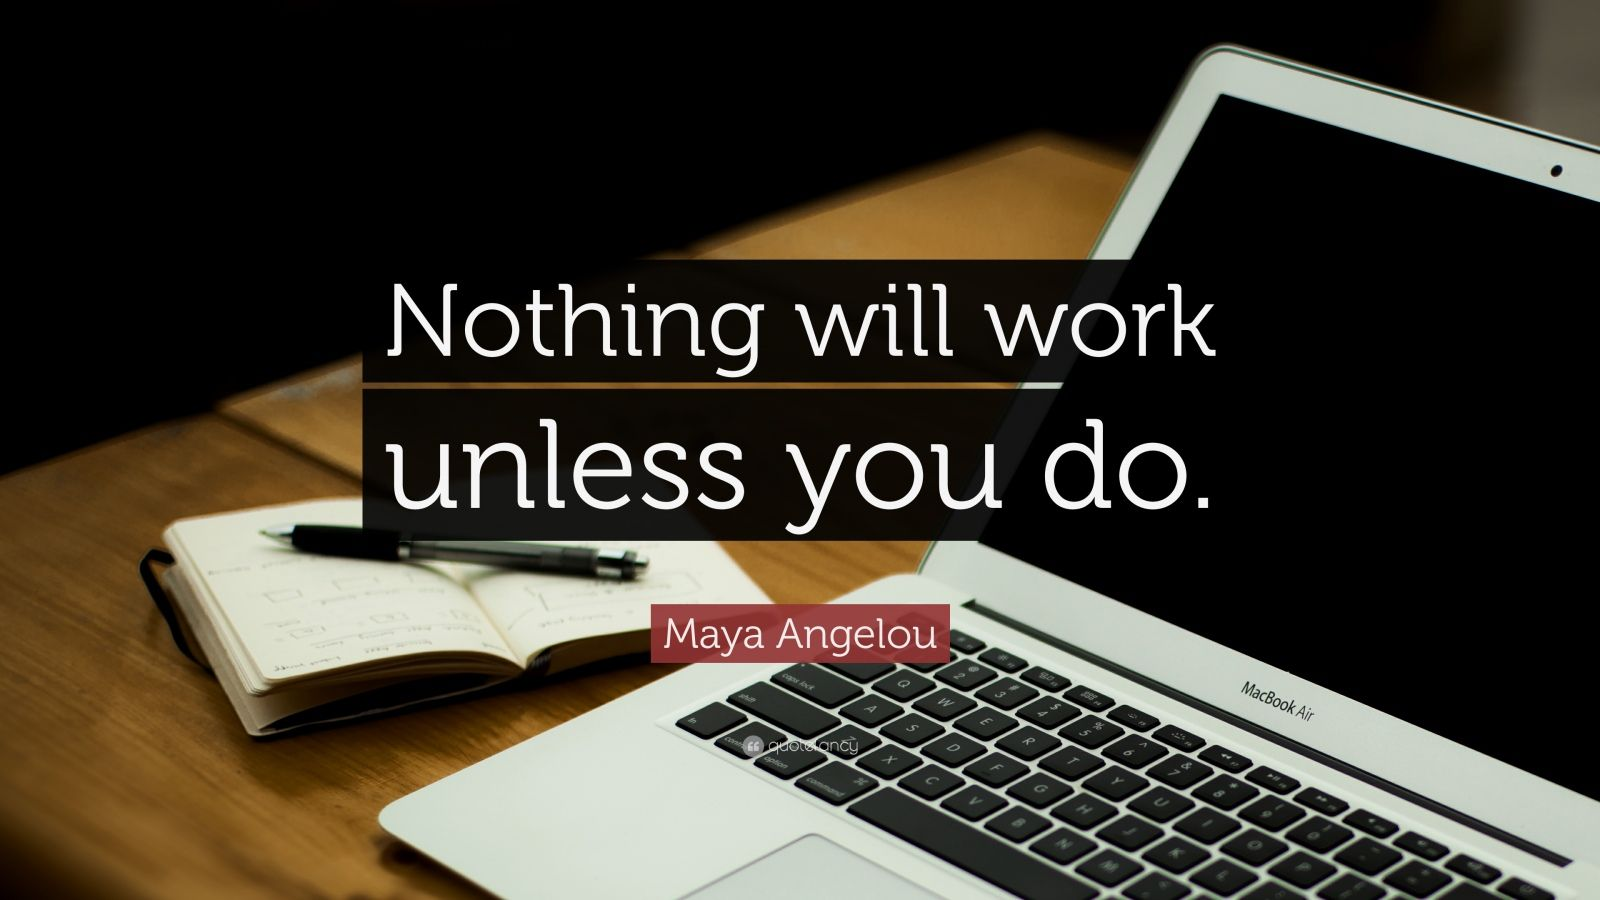 Inspirational Quotes Computer Wallpaper Maya Angelou Quote Nothing Will Work Unless You Do 28